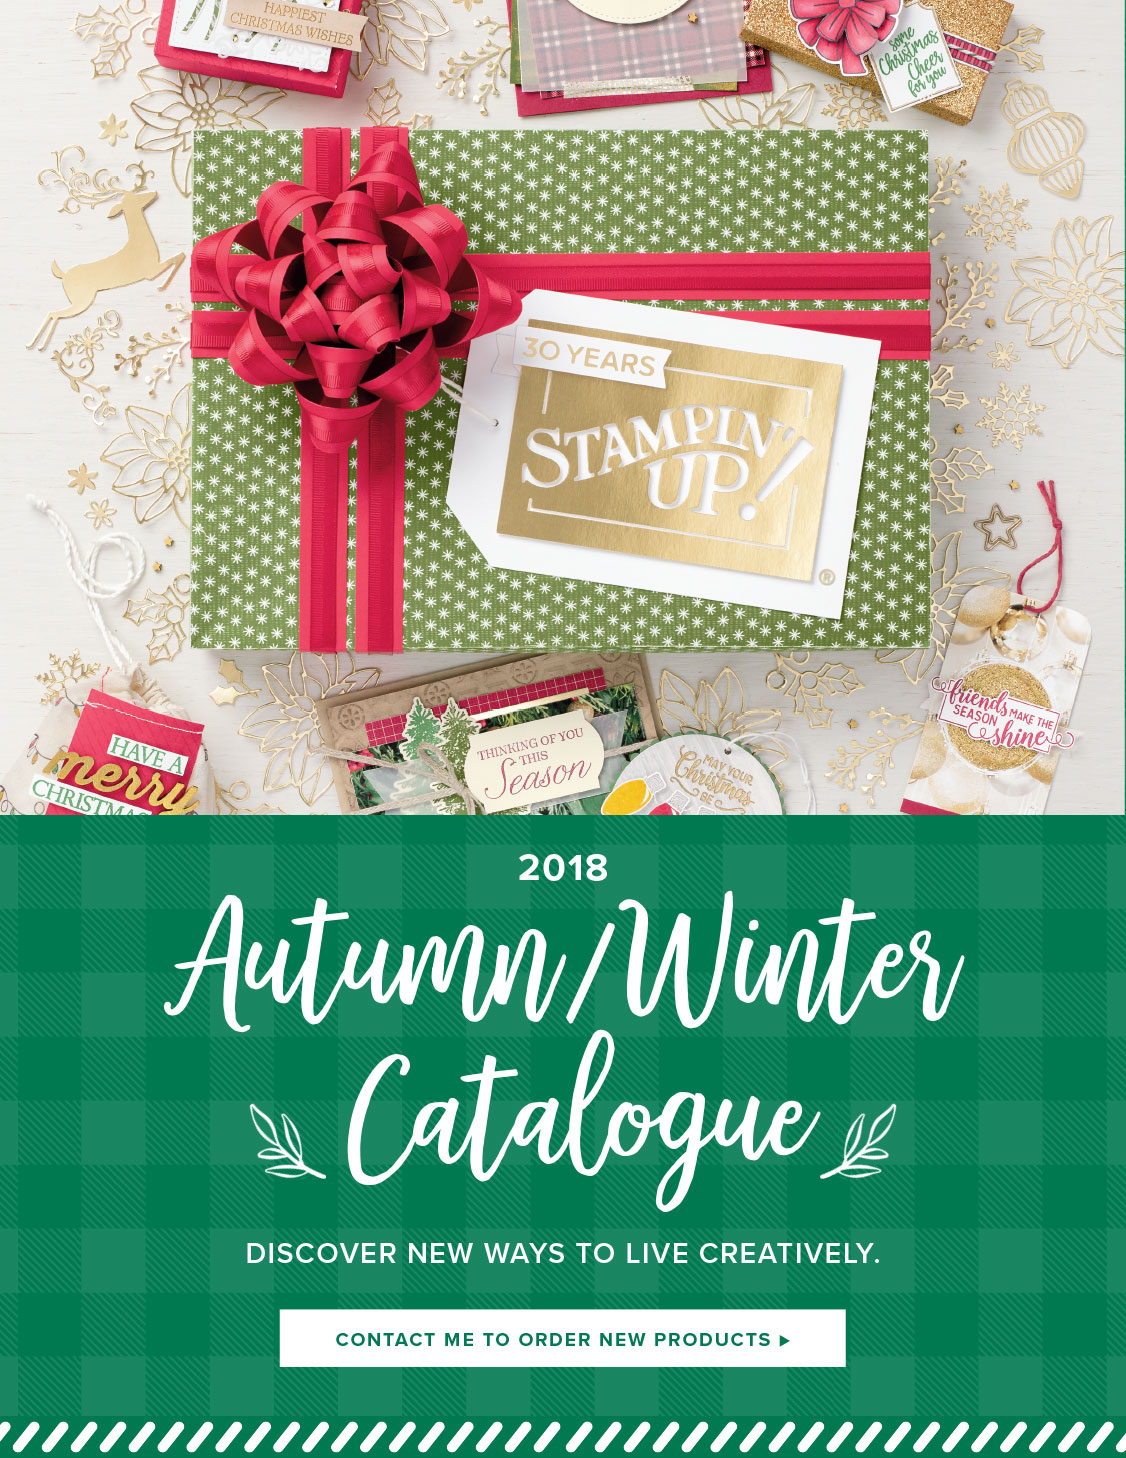 Stampin' Up! 2018 Autumn / Winter Catalogue